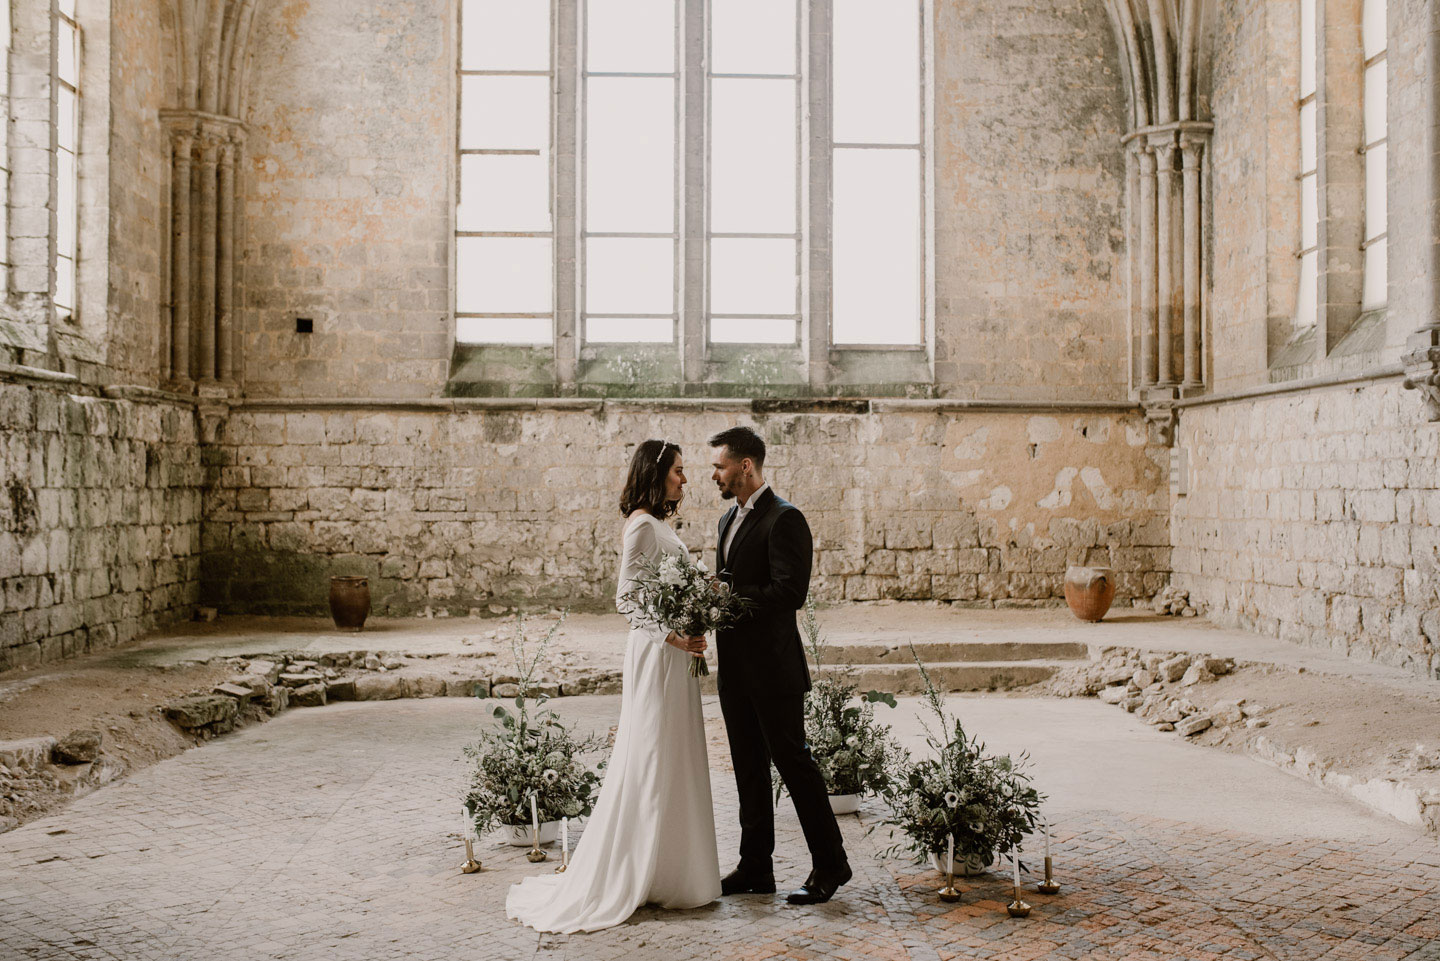 Minimalistisch elegant - Heiraten in der Normandie